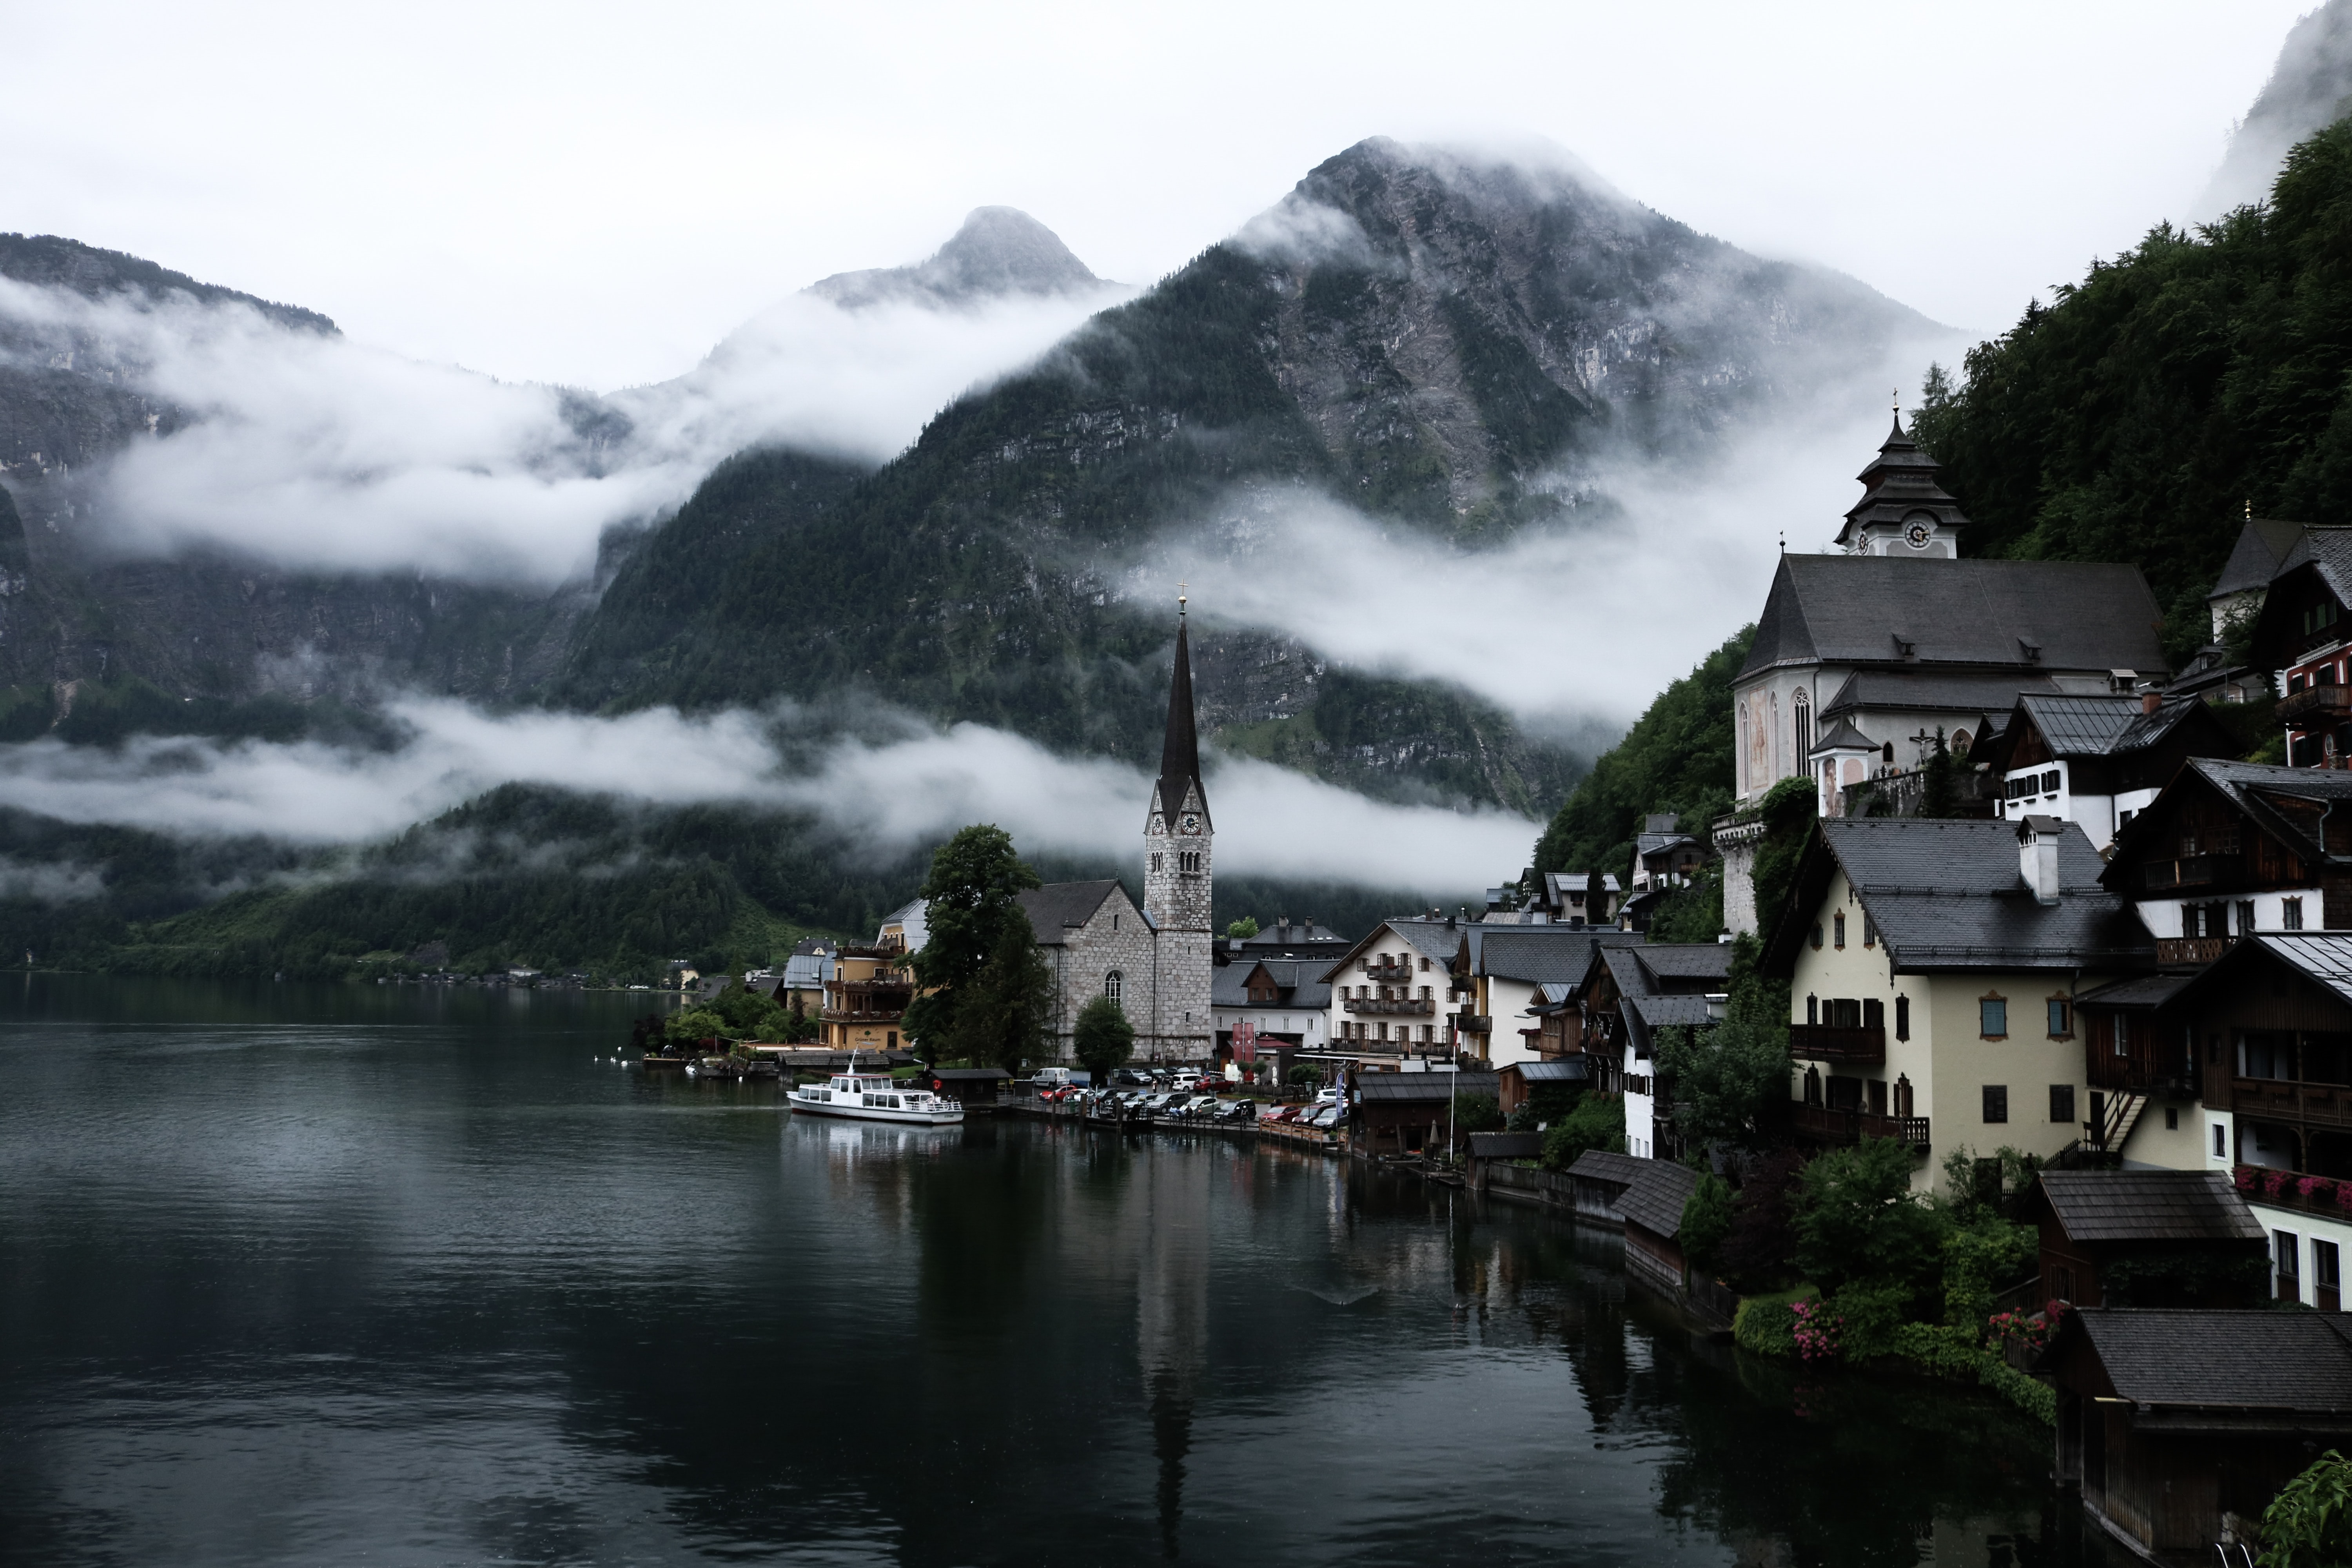 village near lake surrounded by fogs